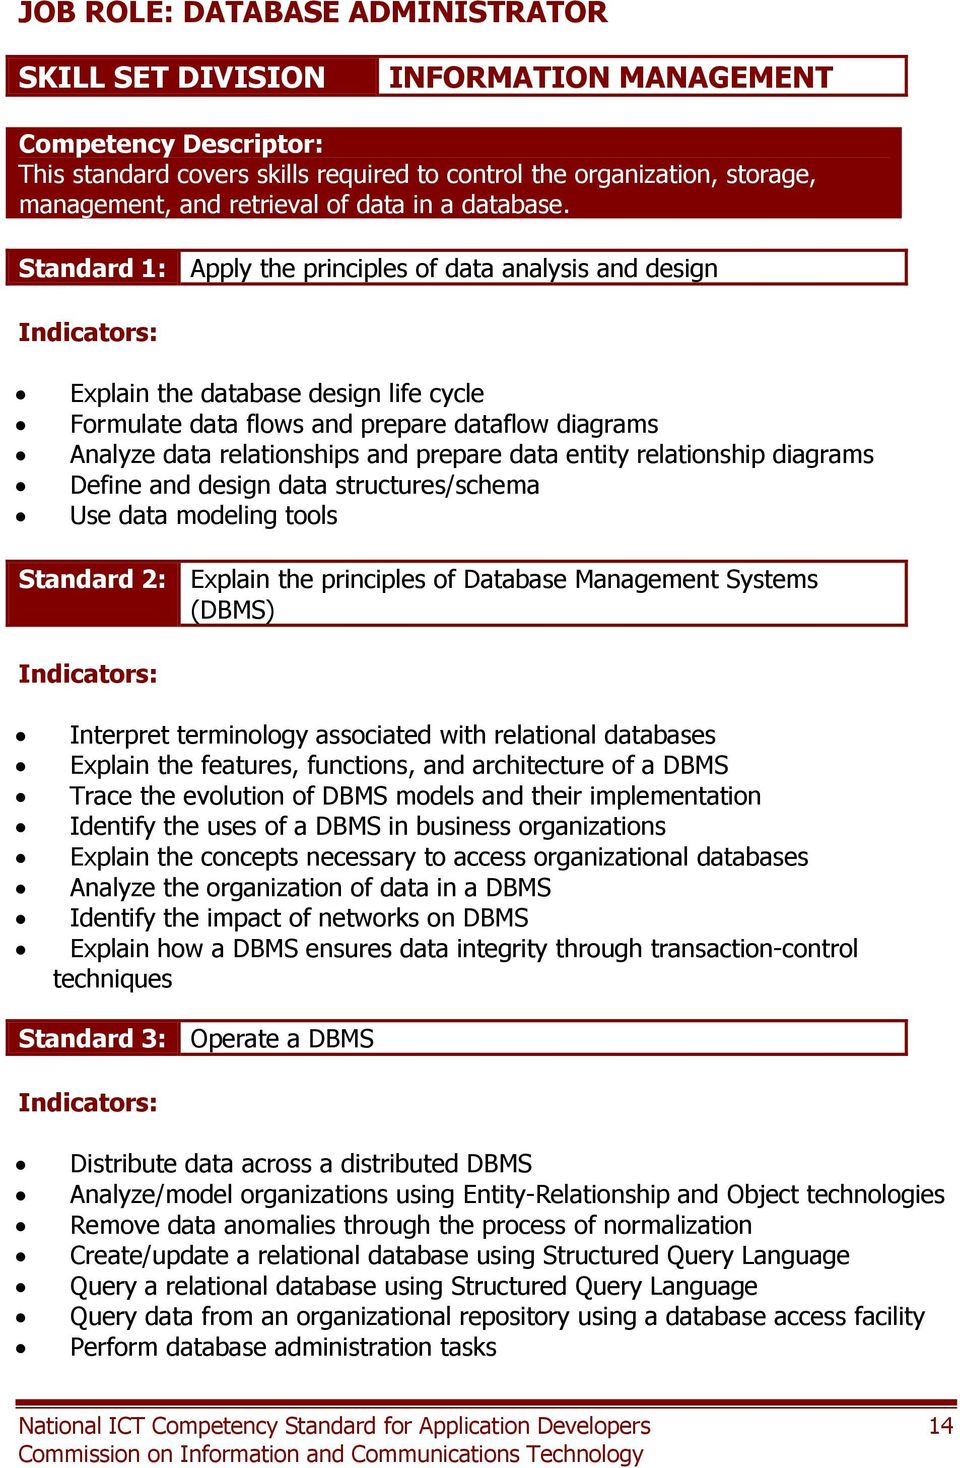 Standard 1: Apply the principles of data analysis and design Explain the database design life cycle Formulate data flows and prepare dataflow diagrams Analyze data relationships and prepare data